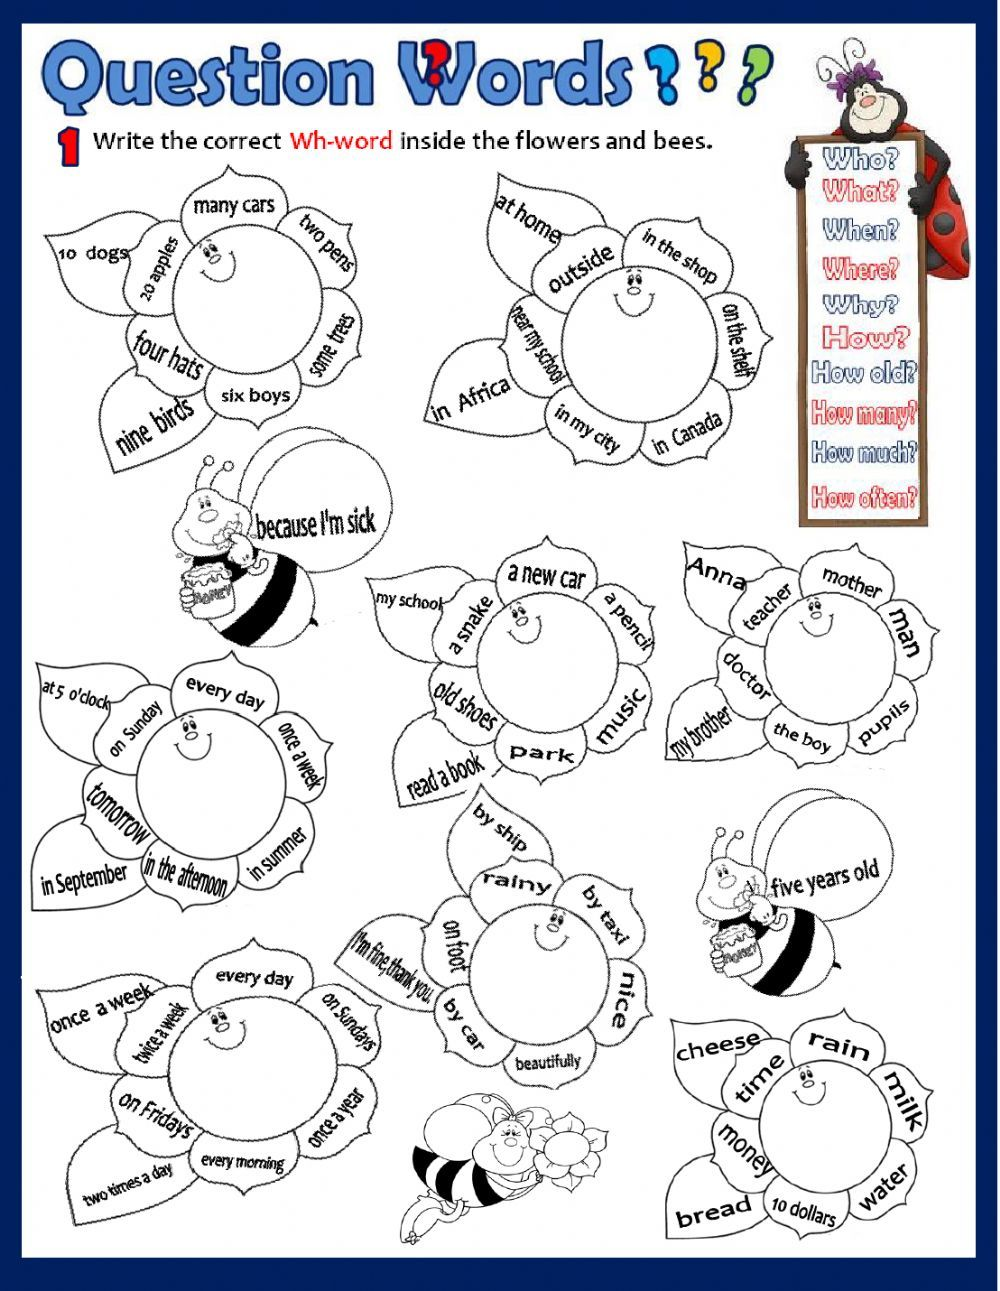 grammar interactive and downloadable worksheet. Check your